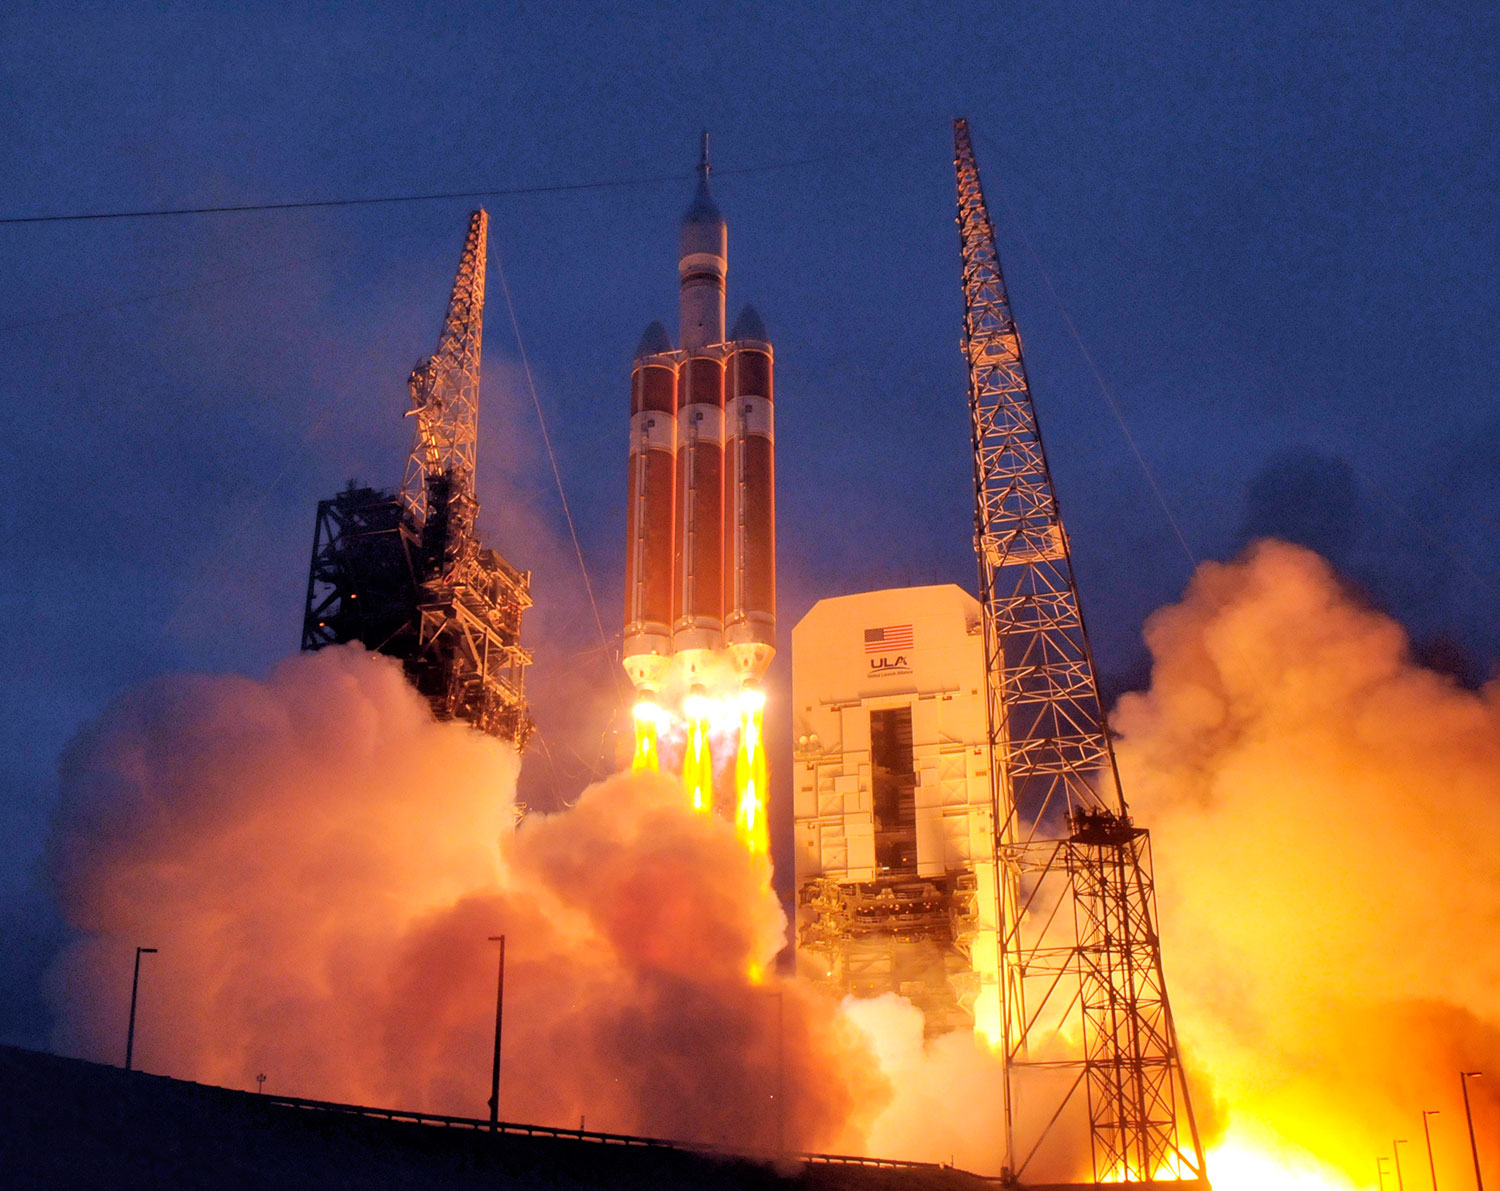 Orion EFT-1 Launch. Credit: Julian Leek/JNN